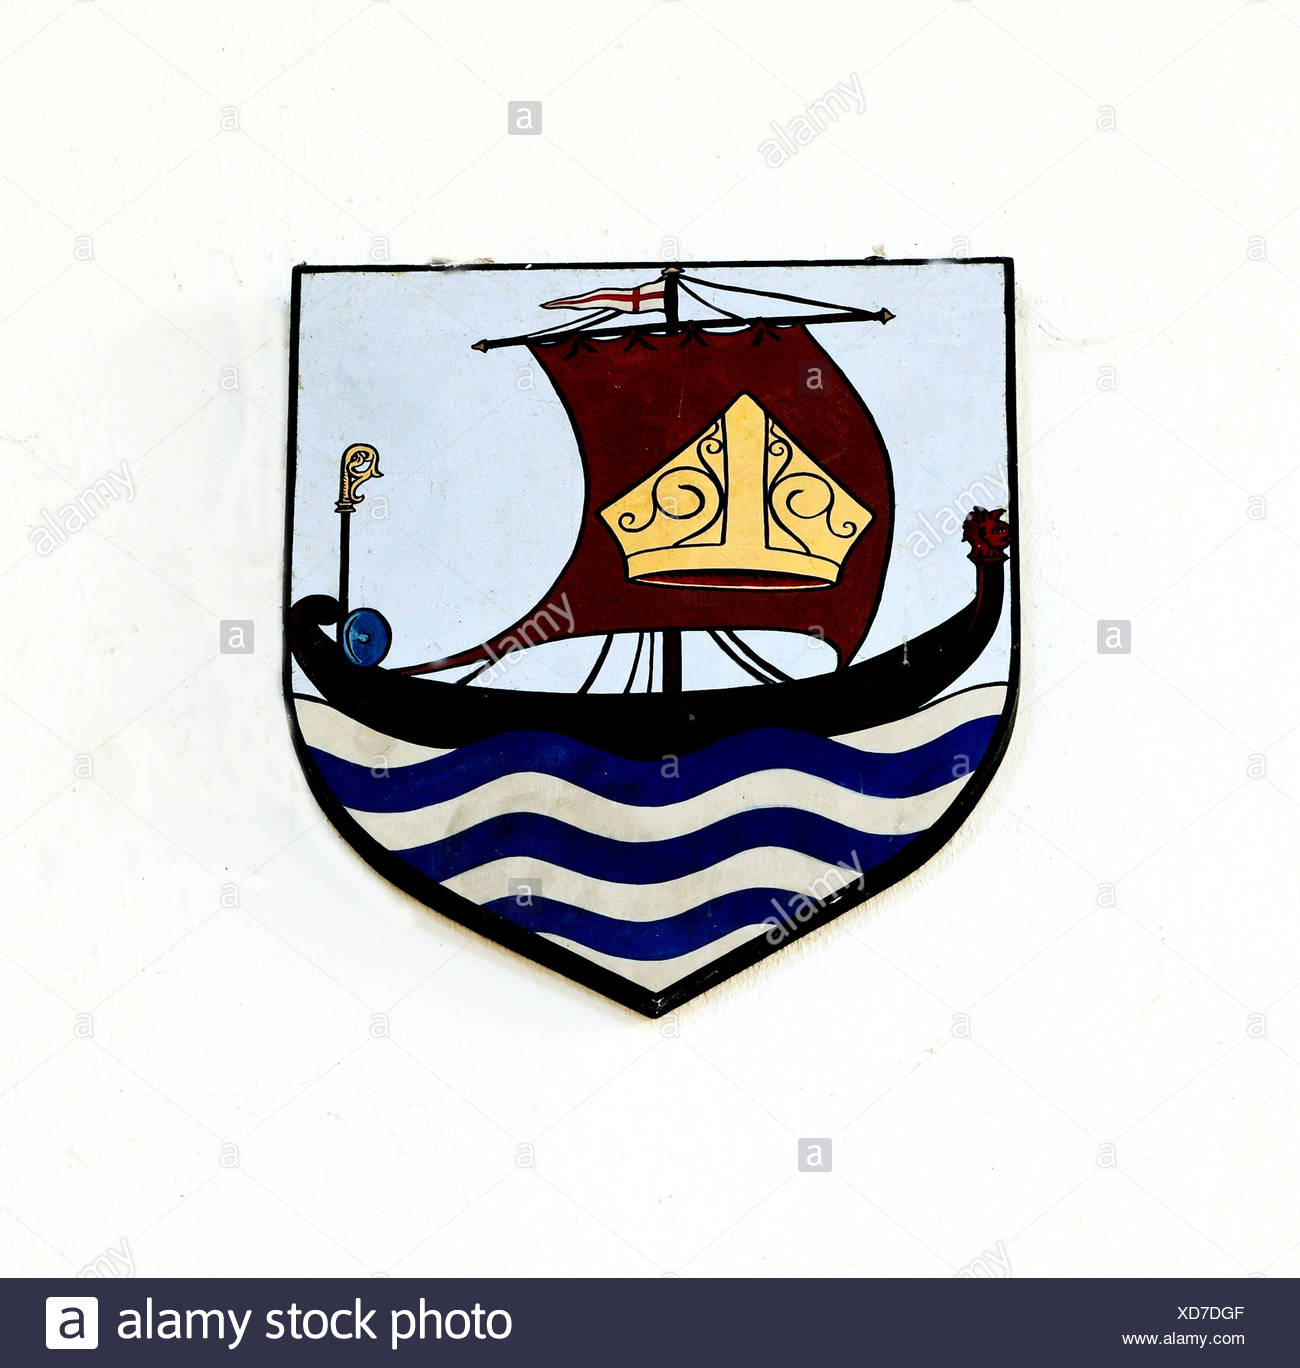 St. Felix, Saxon saint, saints, emblem of mitre, on Sail of a Boat, shield, Flitcham, Norfolk, England, UK - Stock Image